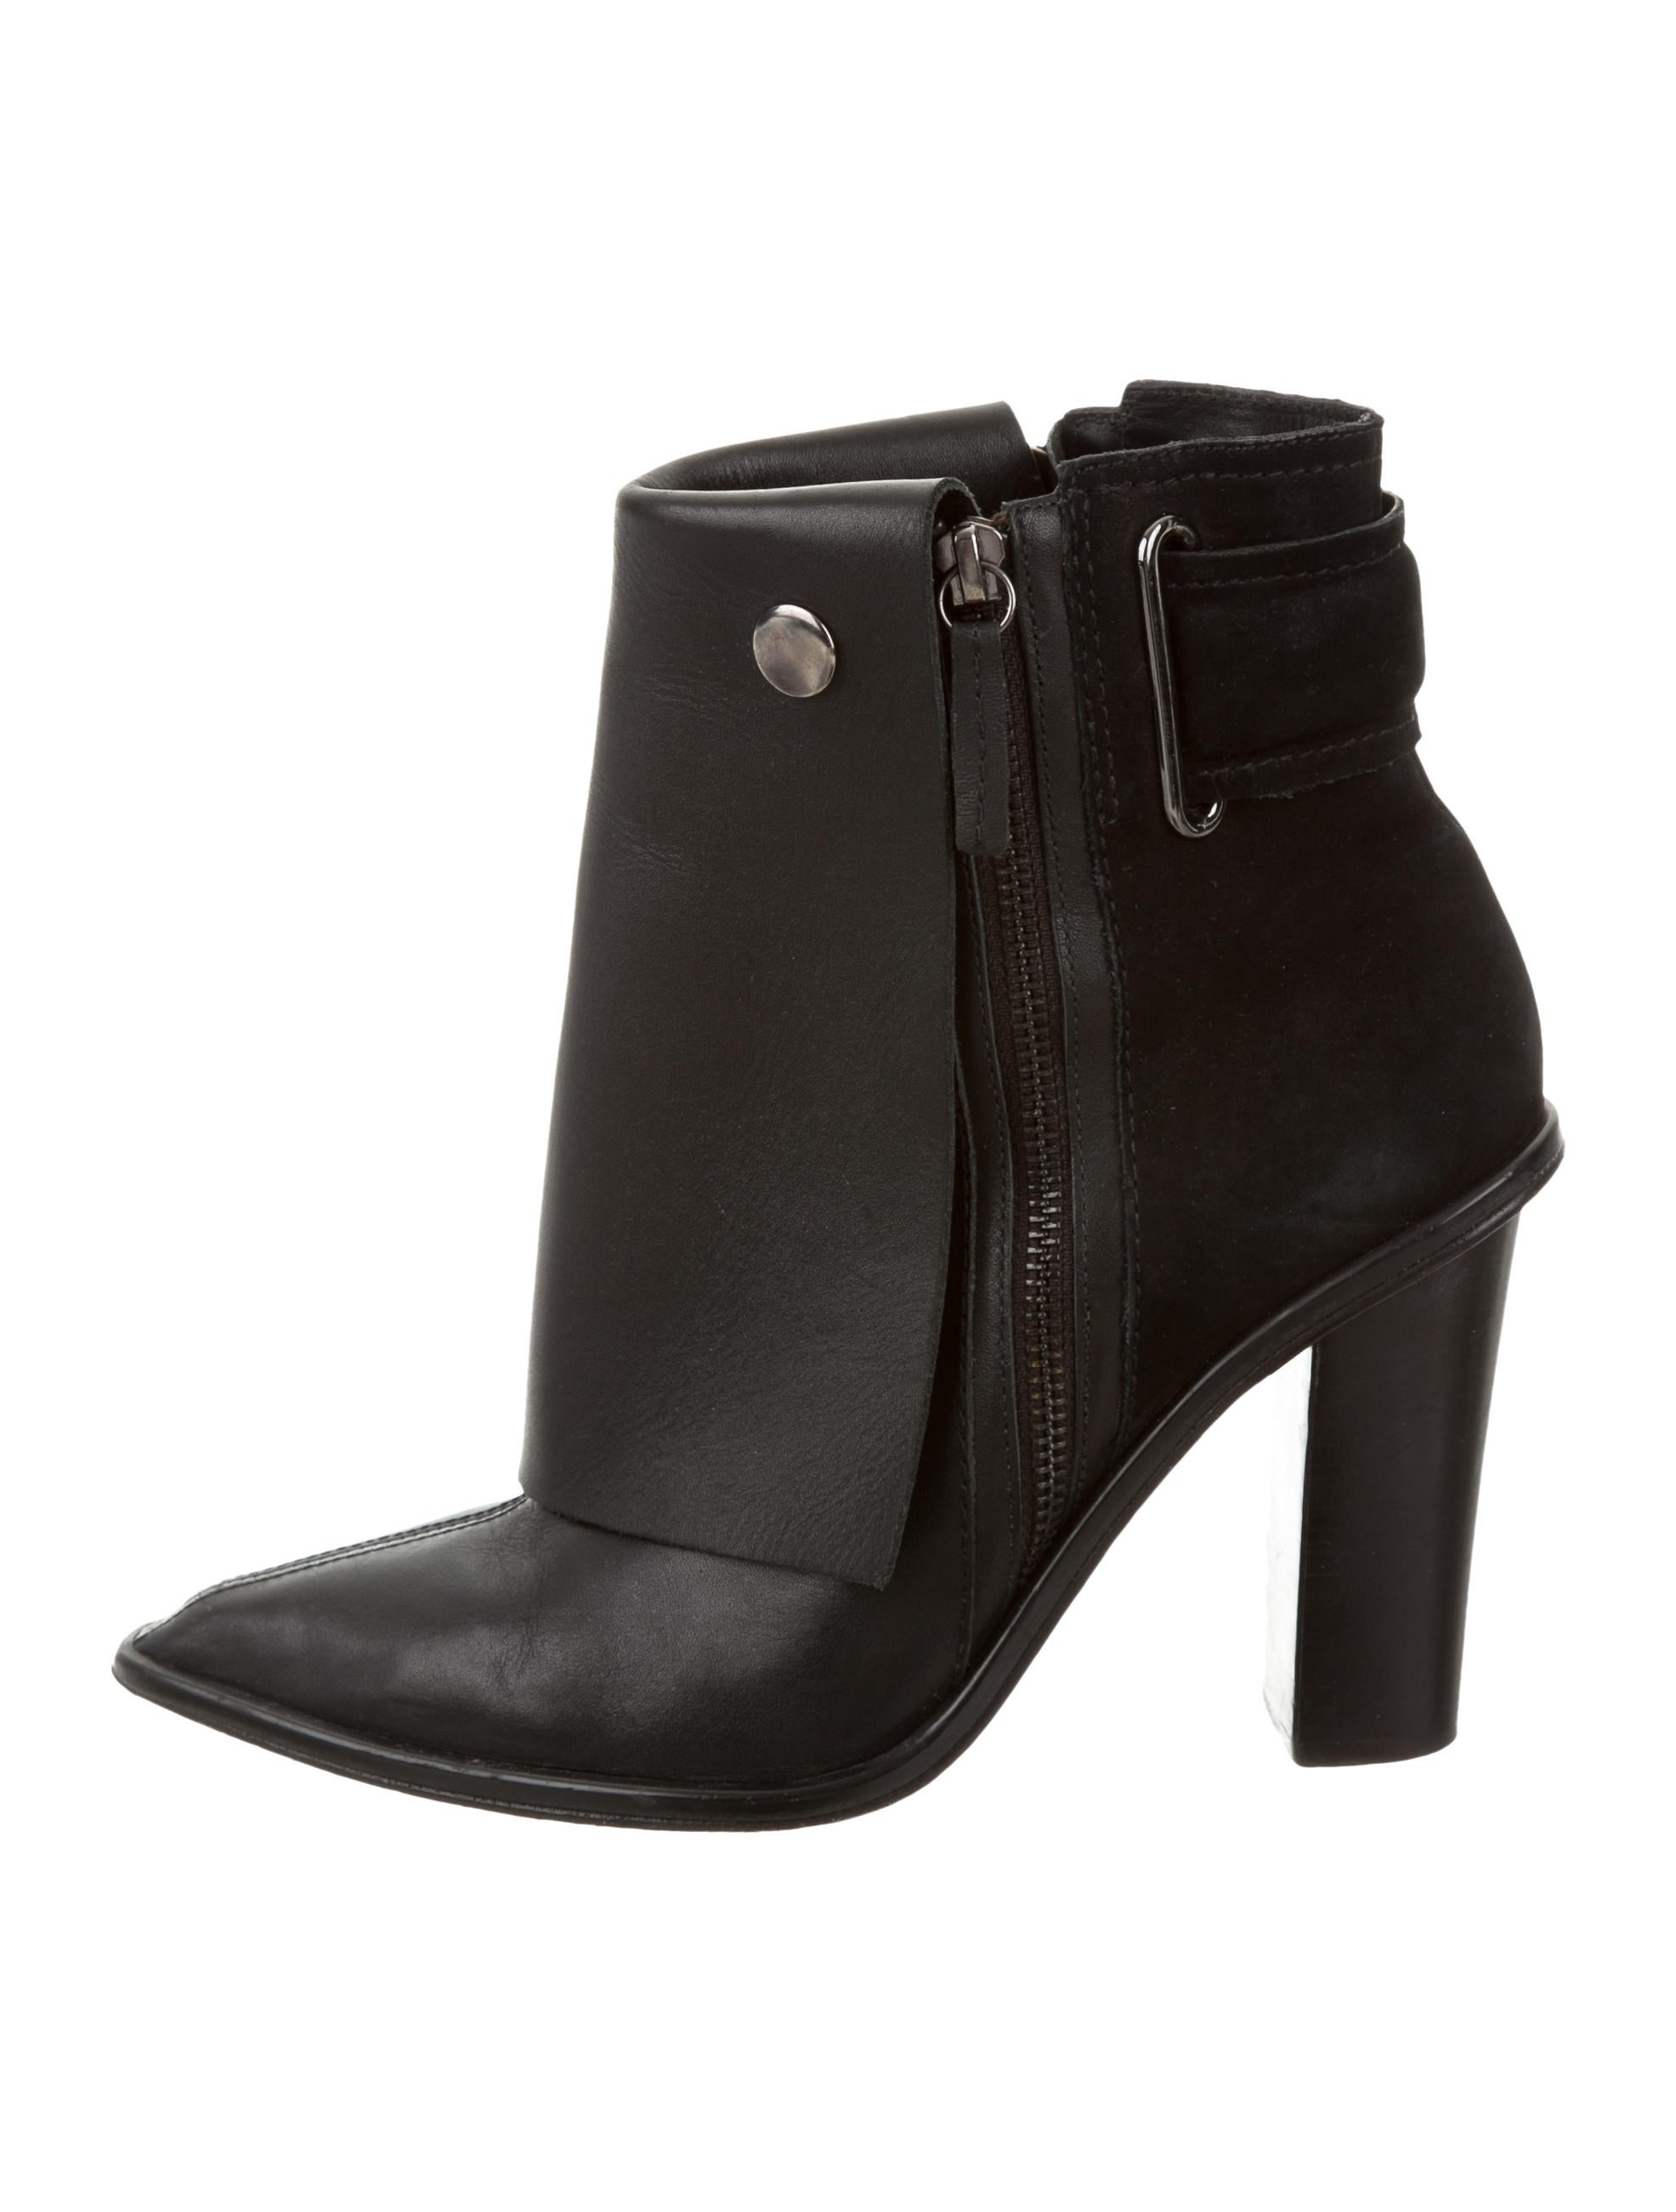 tibi leather pointed toe ankle boots shoes wti31096